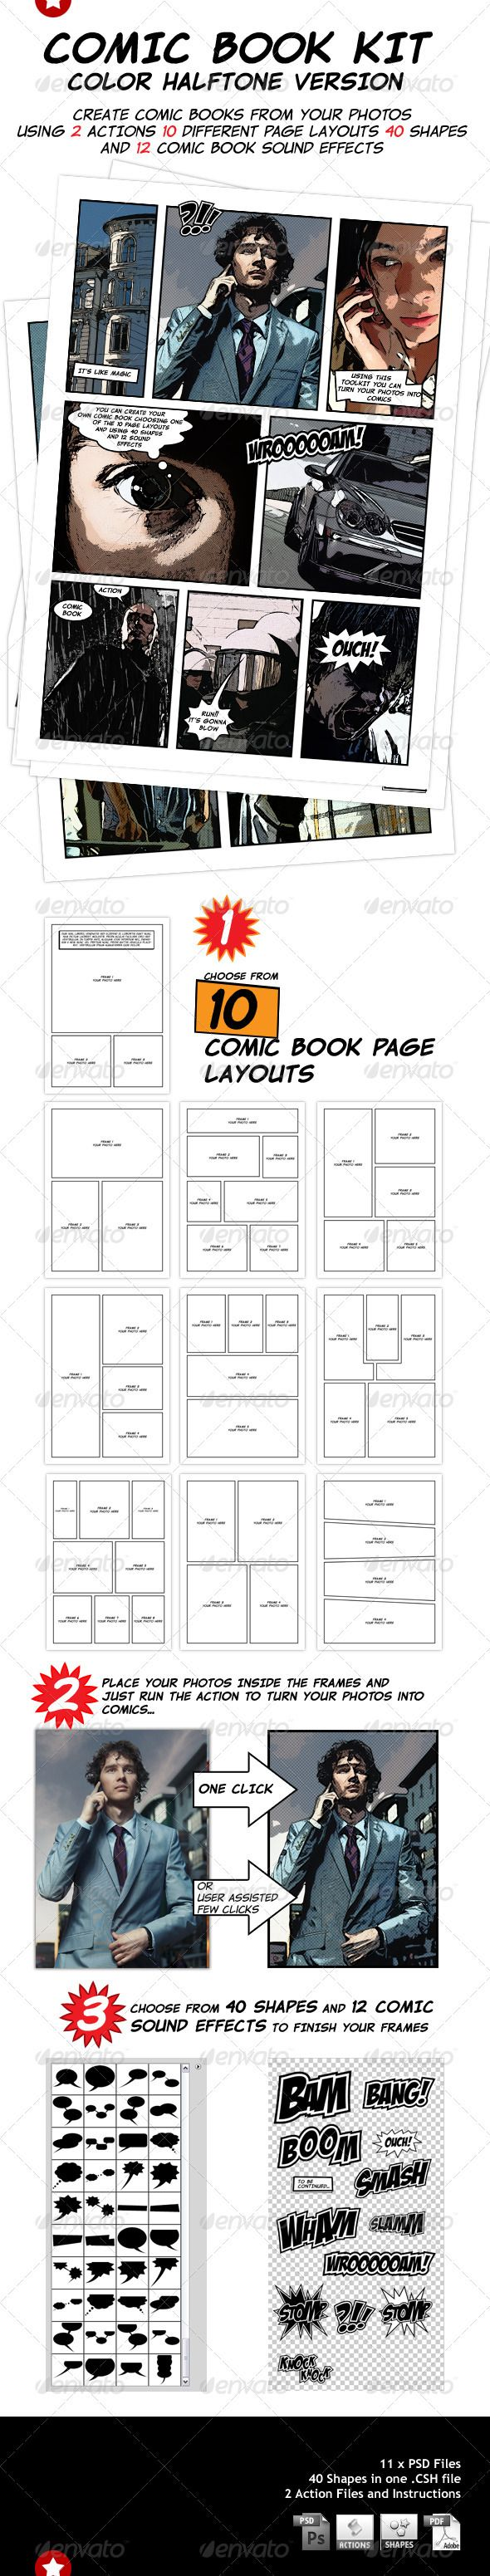 comic book page template psd - you can choose from 10 comic book page layout templates